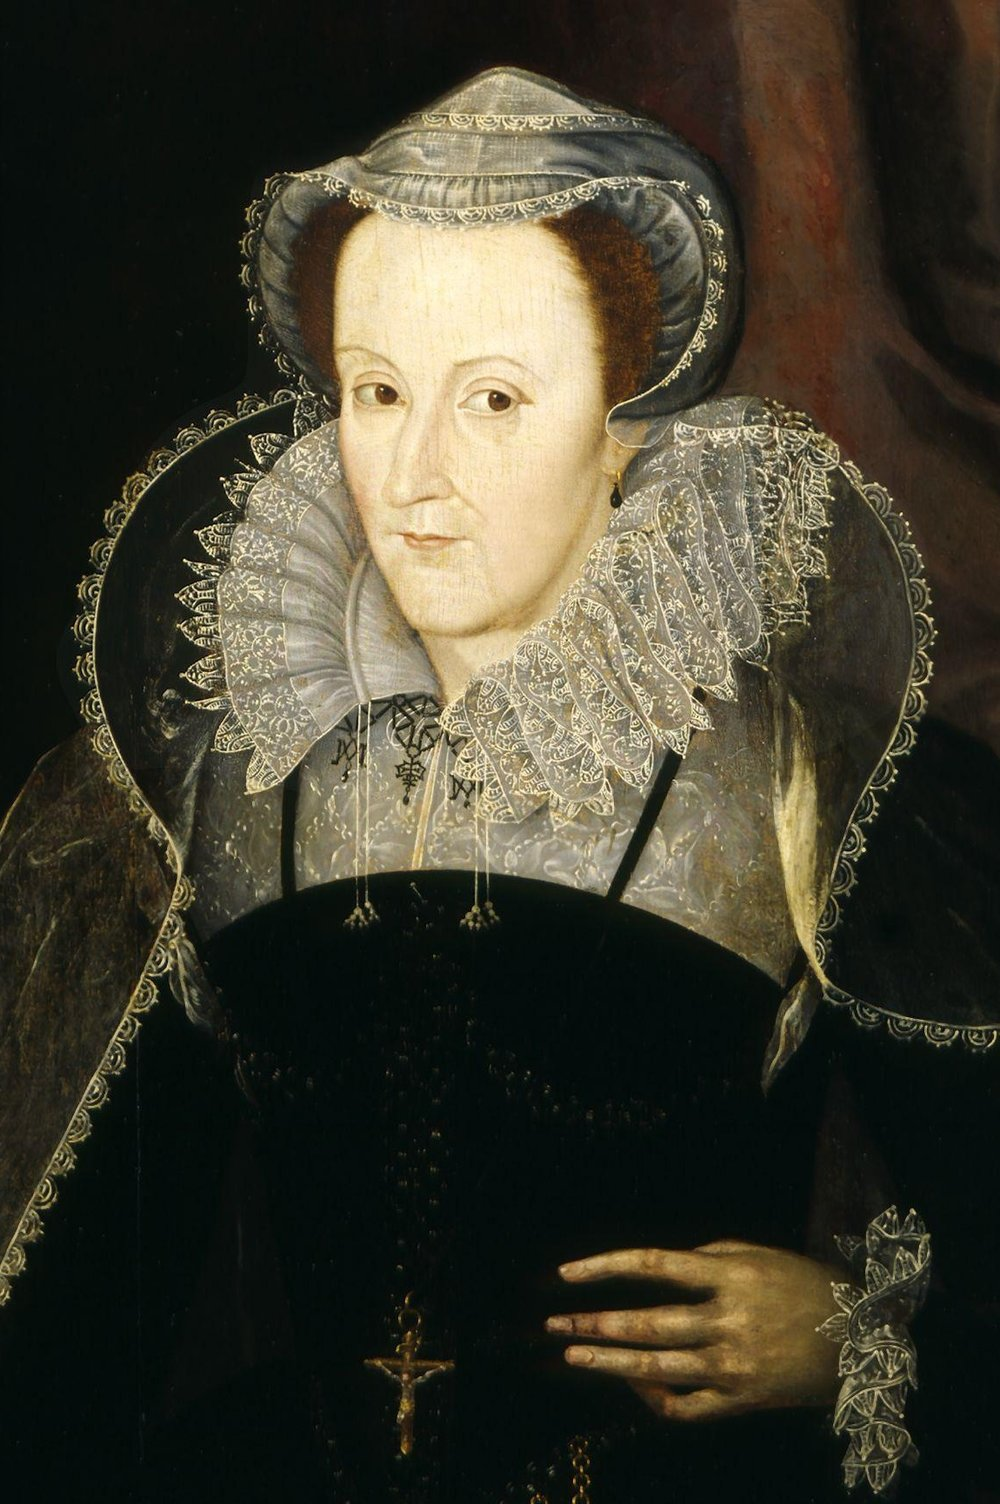 """Mary, Queen of Scots in captivity,"" dated 1578. By Nicholas Hilliard (died 1619)."